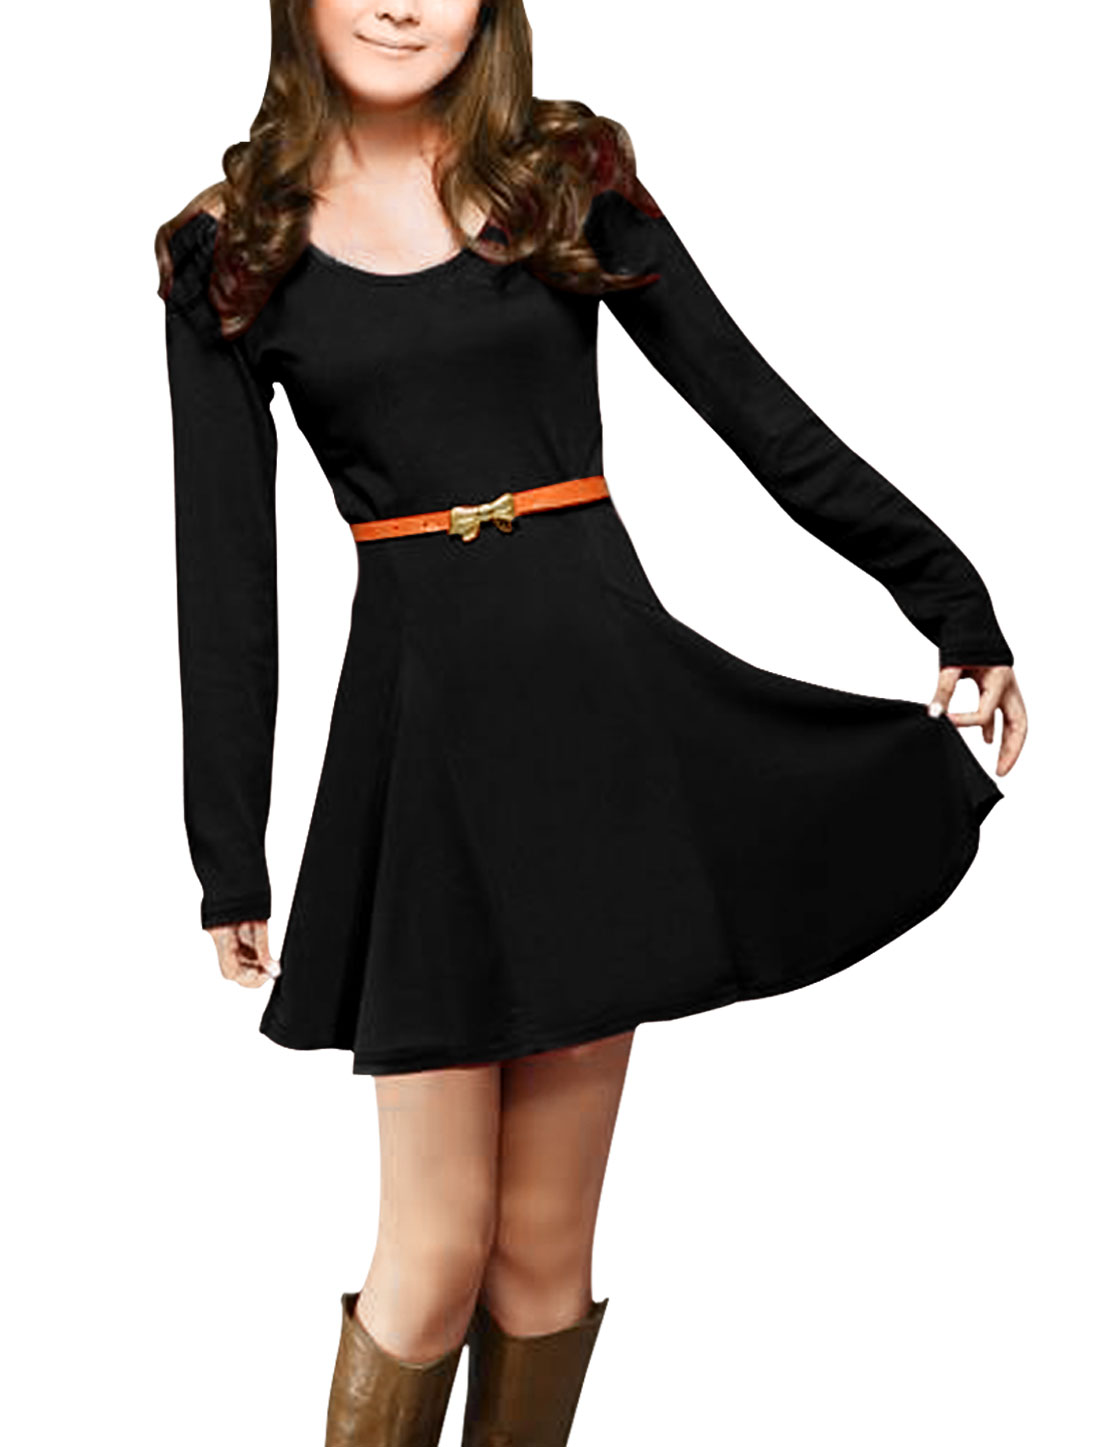 Ladies Black Ruffled Detail Long Sleeves Fashional Mini Dress XS